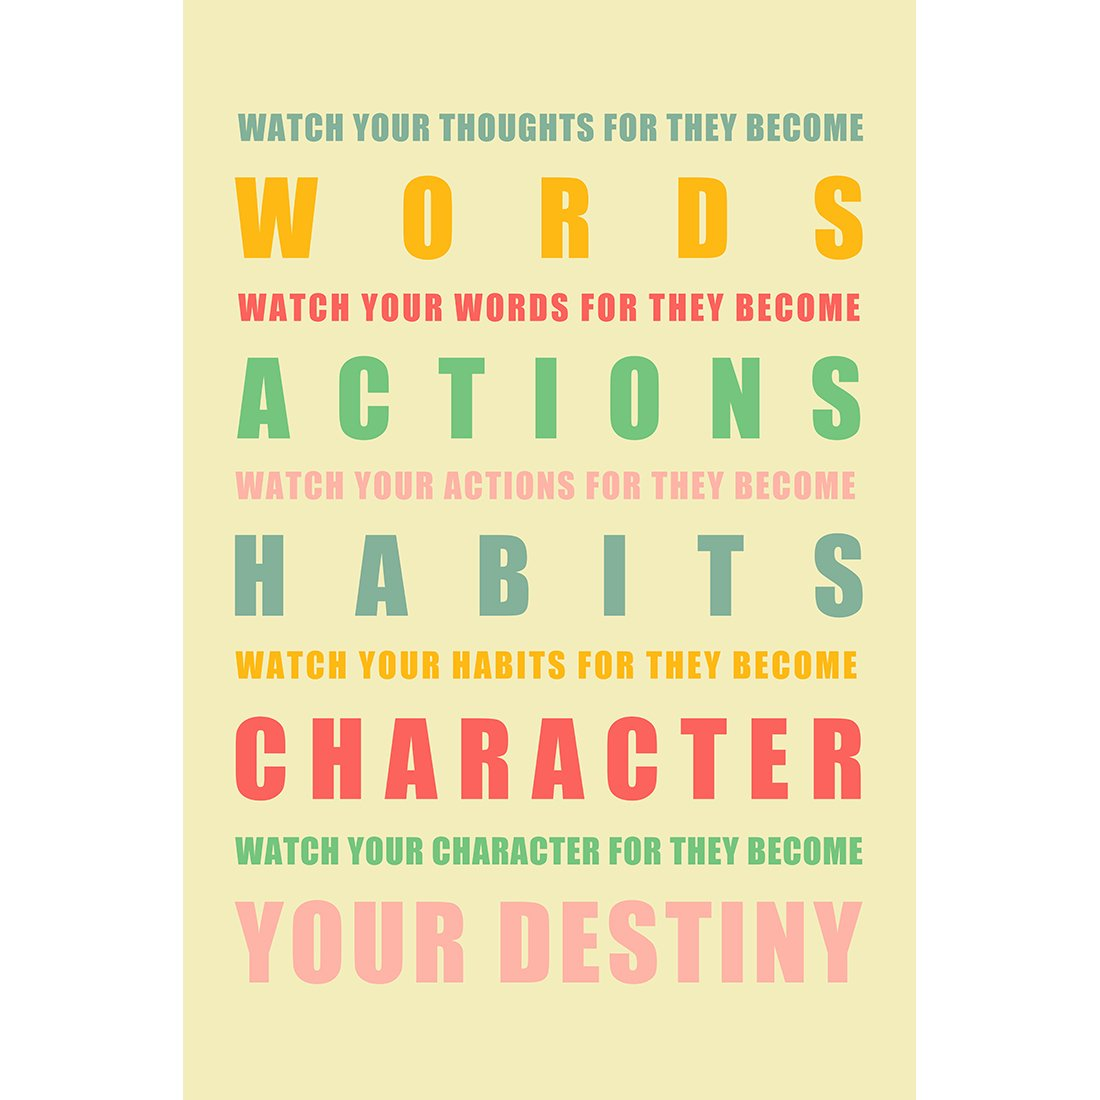 Amazon.com: Meishe Art Watch Your Thoughts Motivational Poster Sign ...